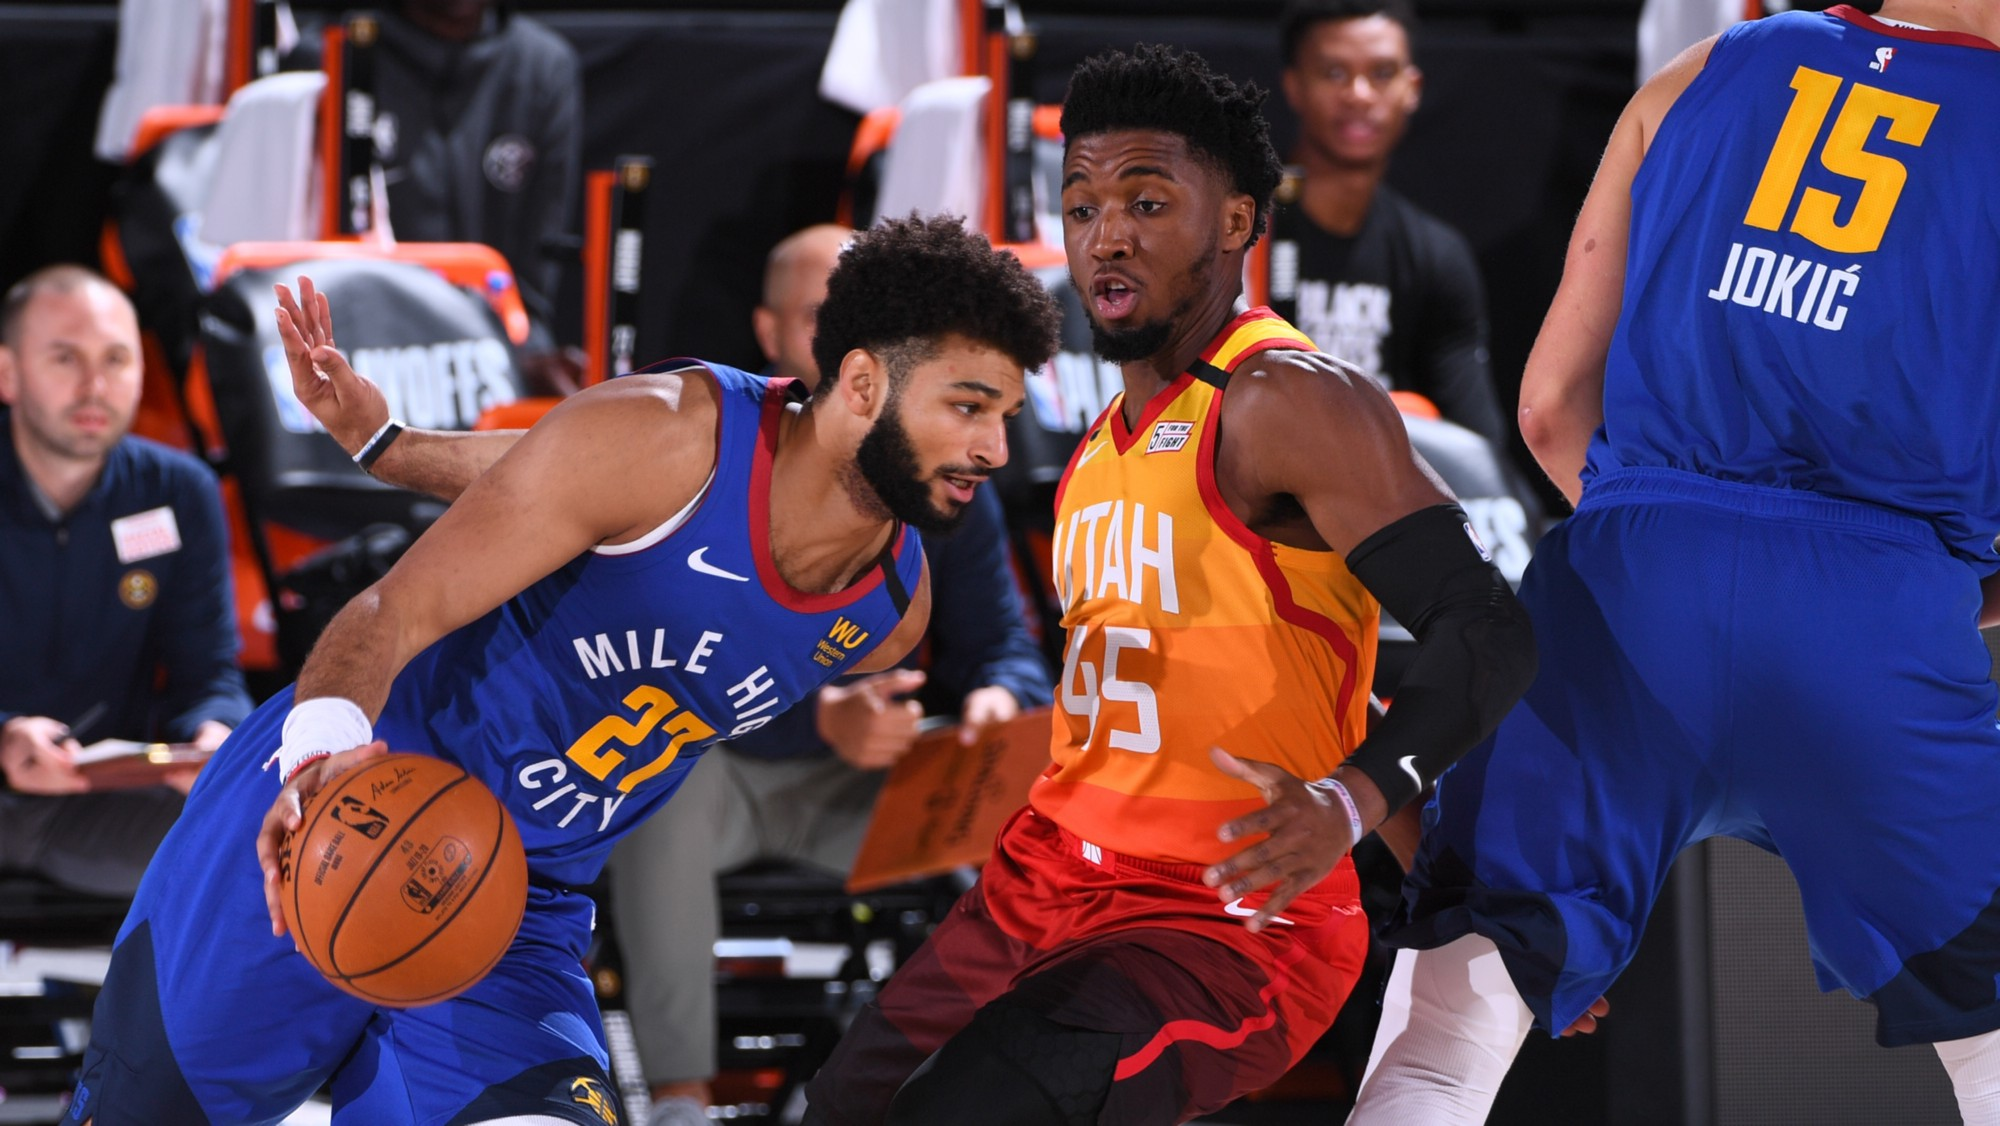 Two basketball players (Jamal Murray (left) and Donovan Mitchell (right)) facing off